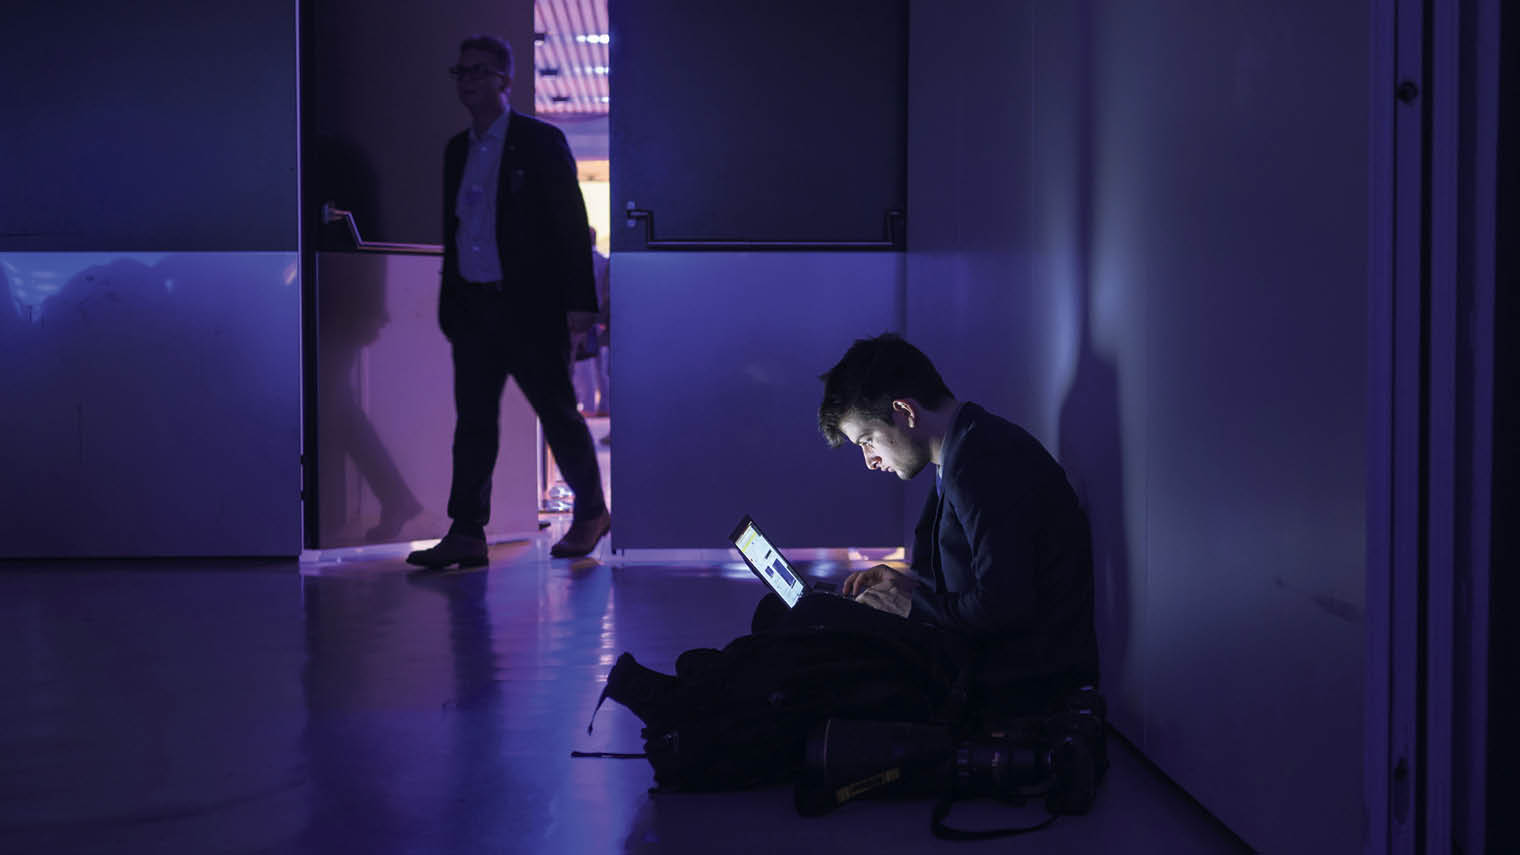 Person in a dark room on a laptop